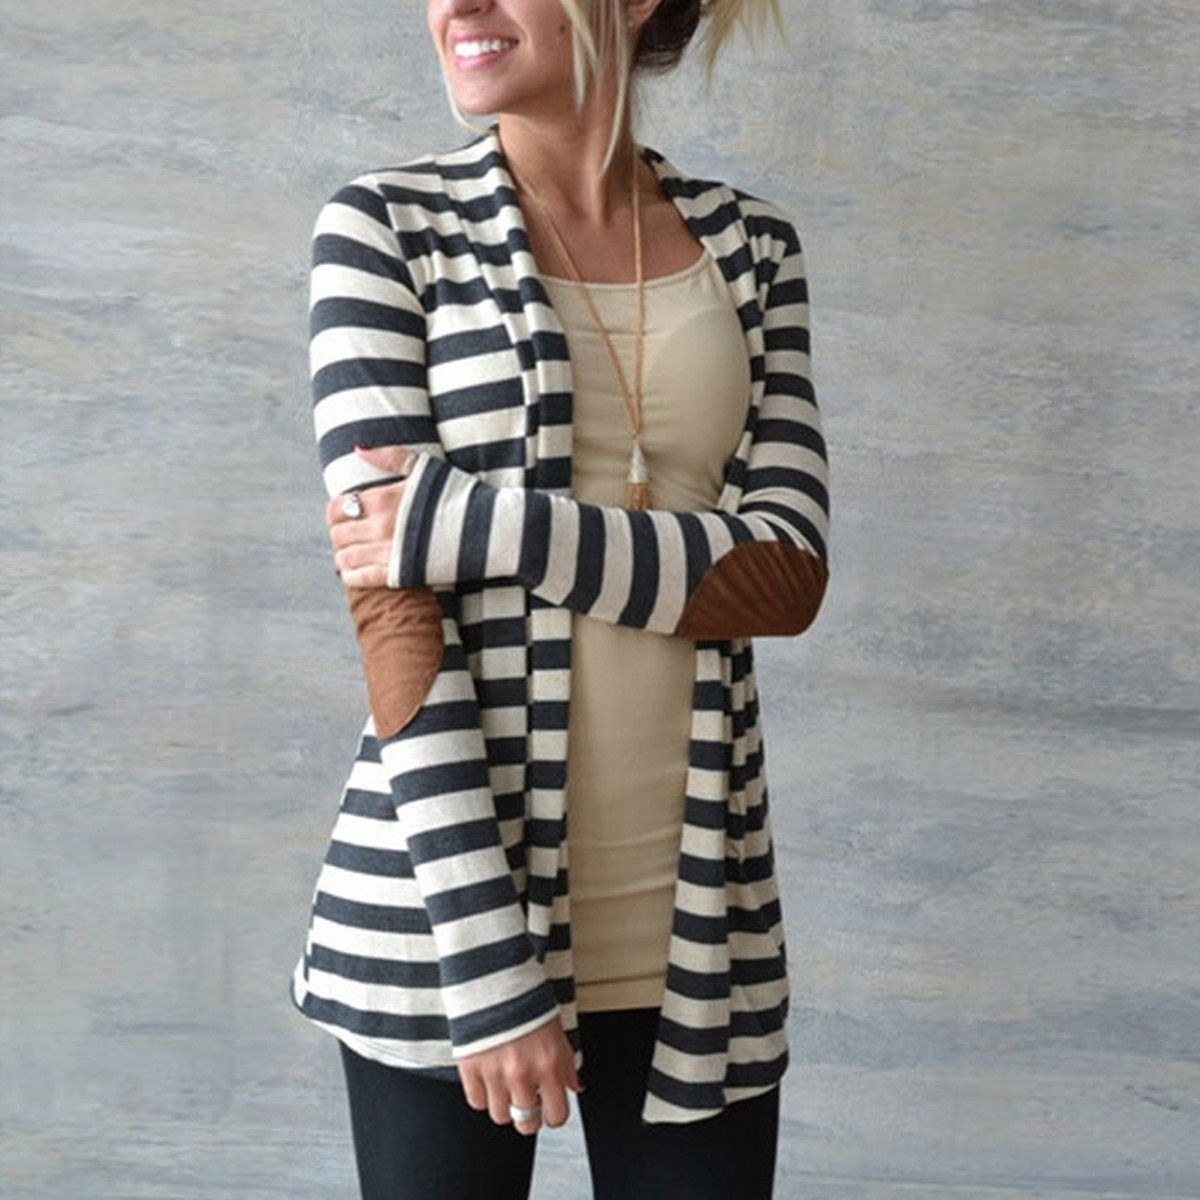 ZANZEA Fashion 2018 <font><b>Autumn</b></font> Outerwear Women Long Sleeve Striped Printed Cardigan Casual Elbow Patchwork Knitted Sweater Plus Size